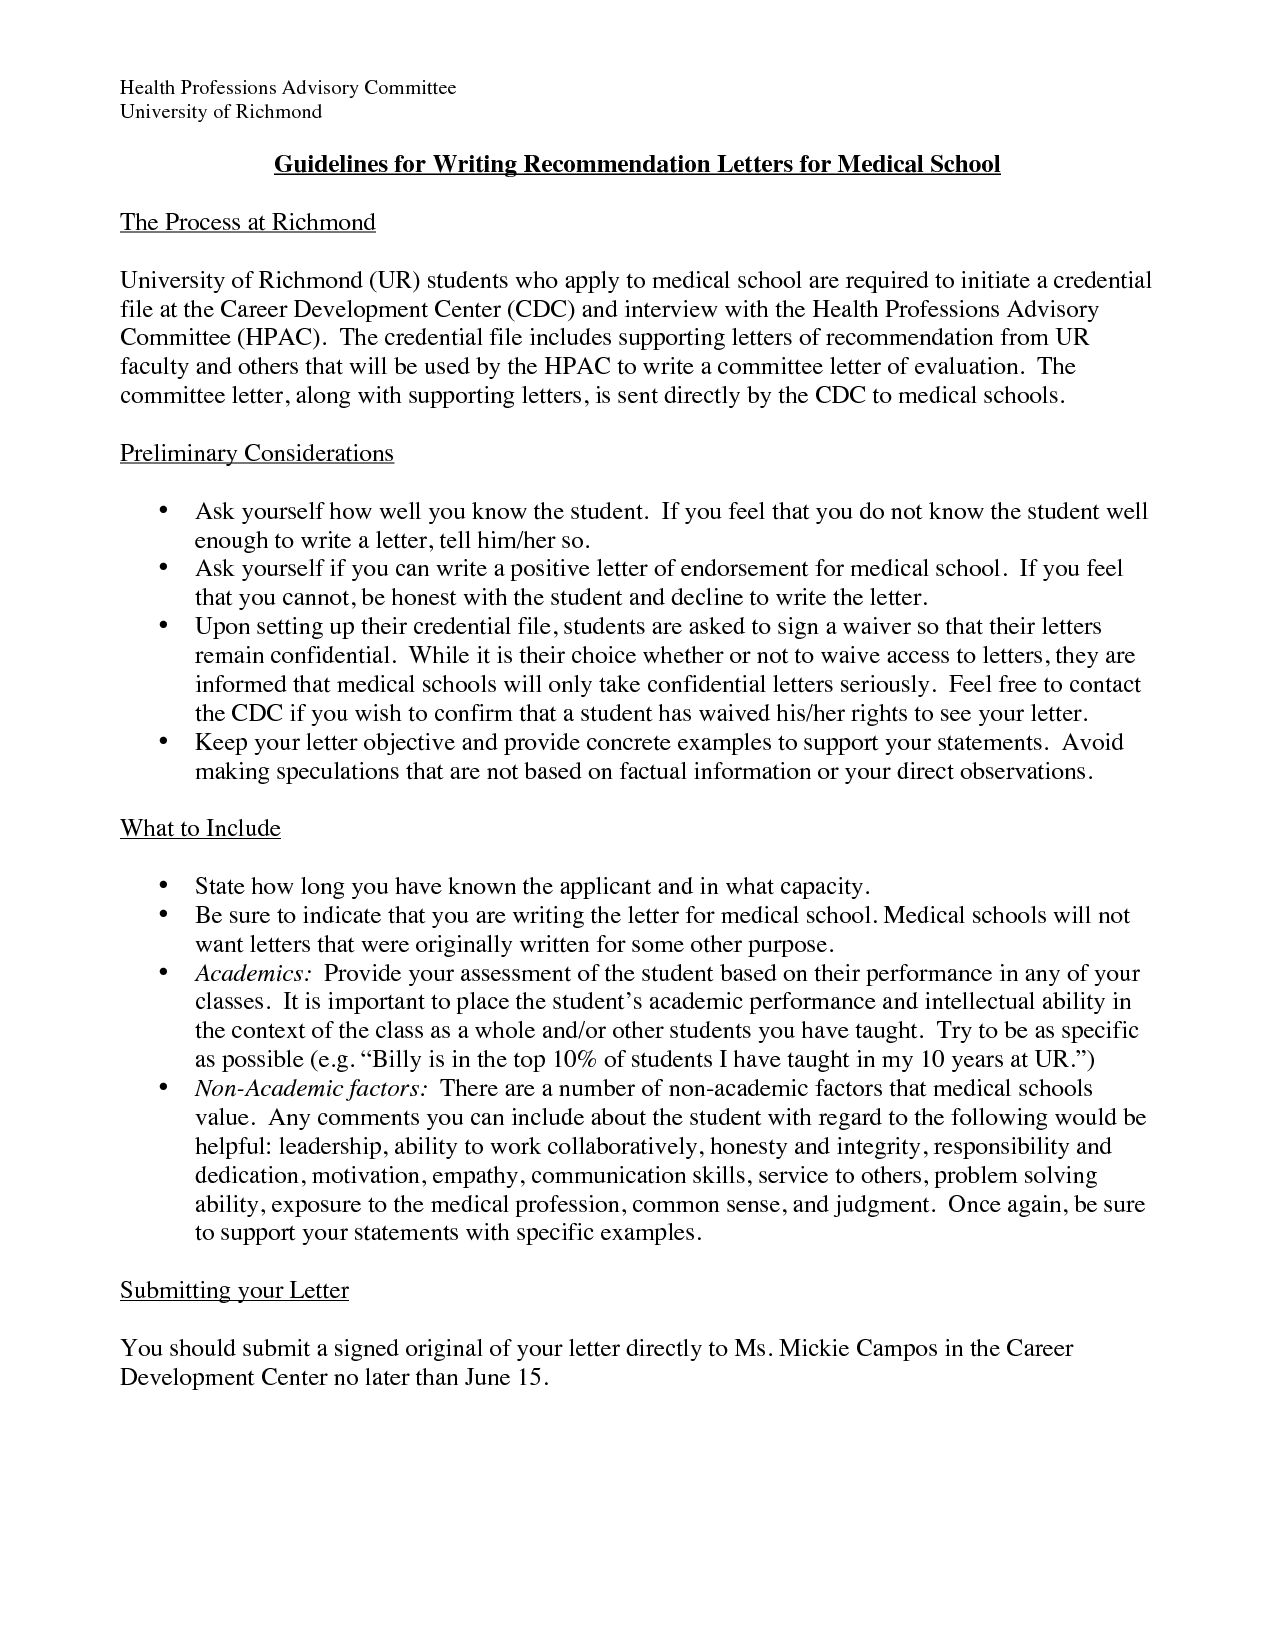 Medical School Reference Letter Template - Best Doctors Note for School Template